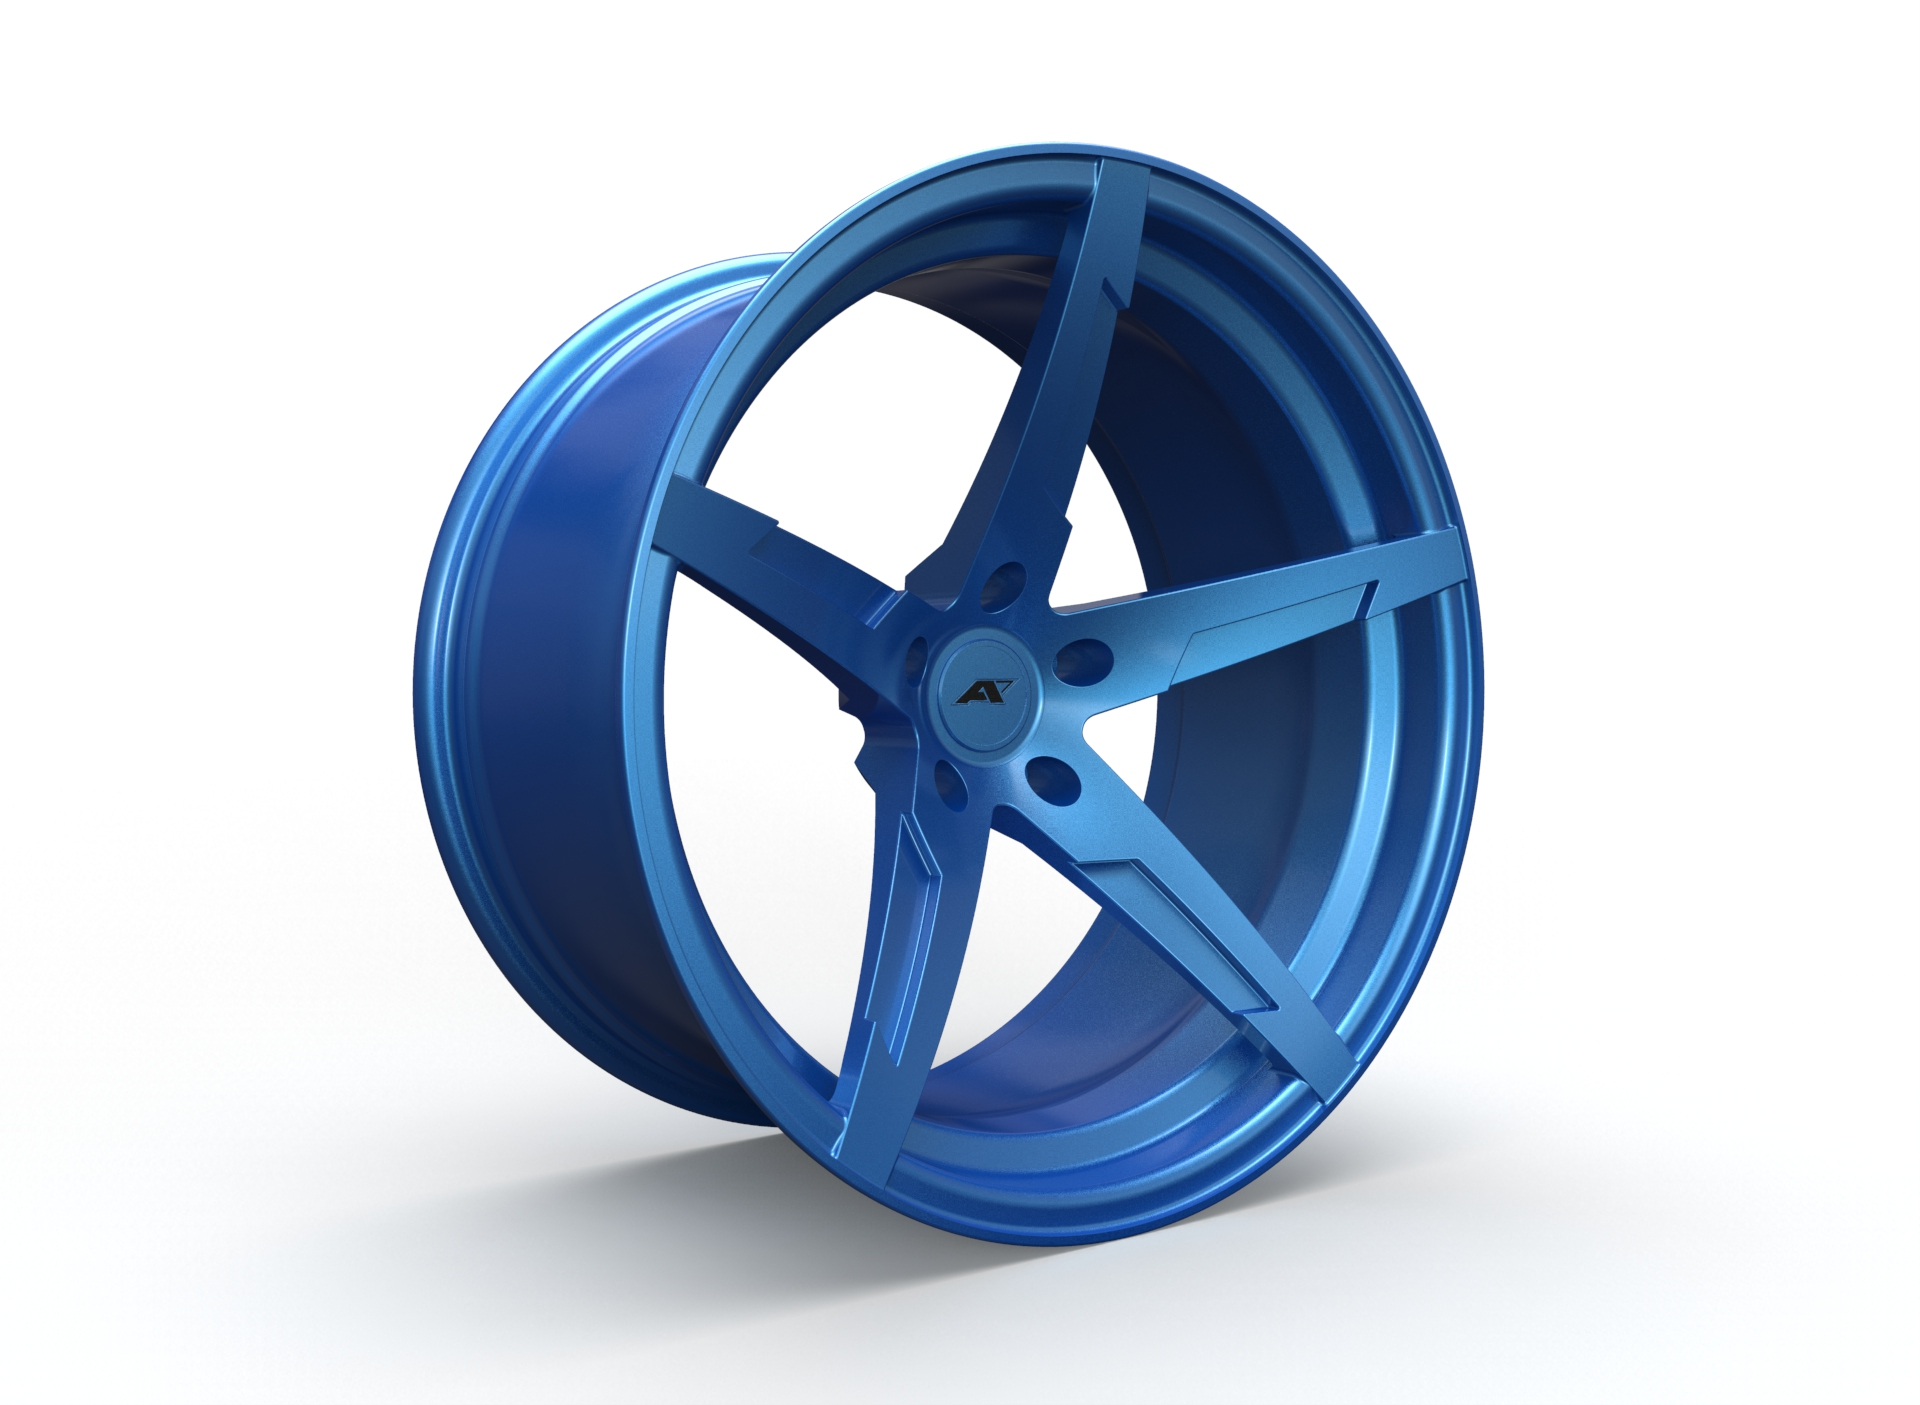 alphamale_wheels_4.90.jpg